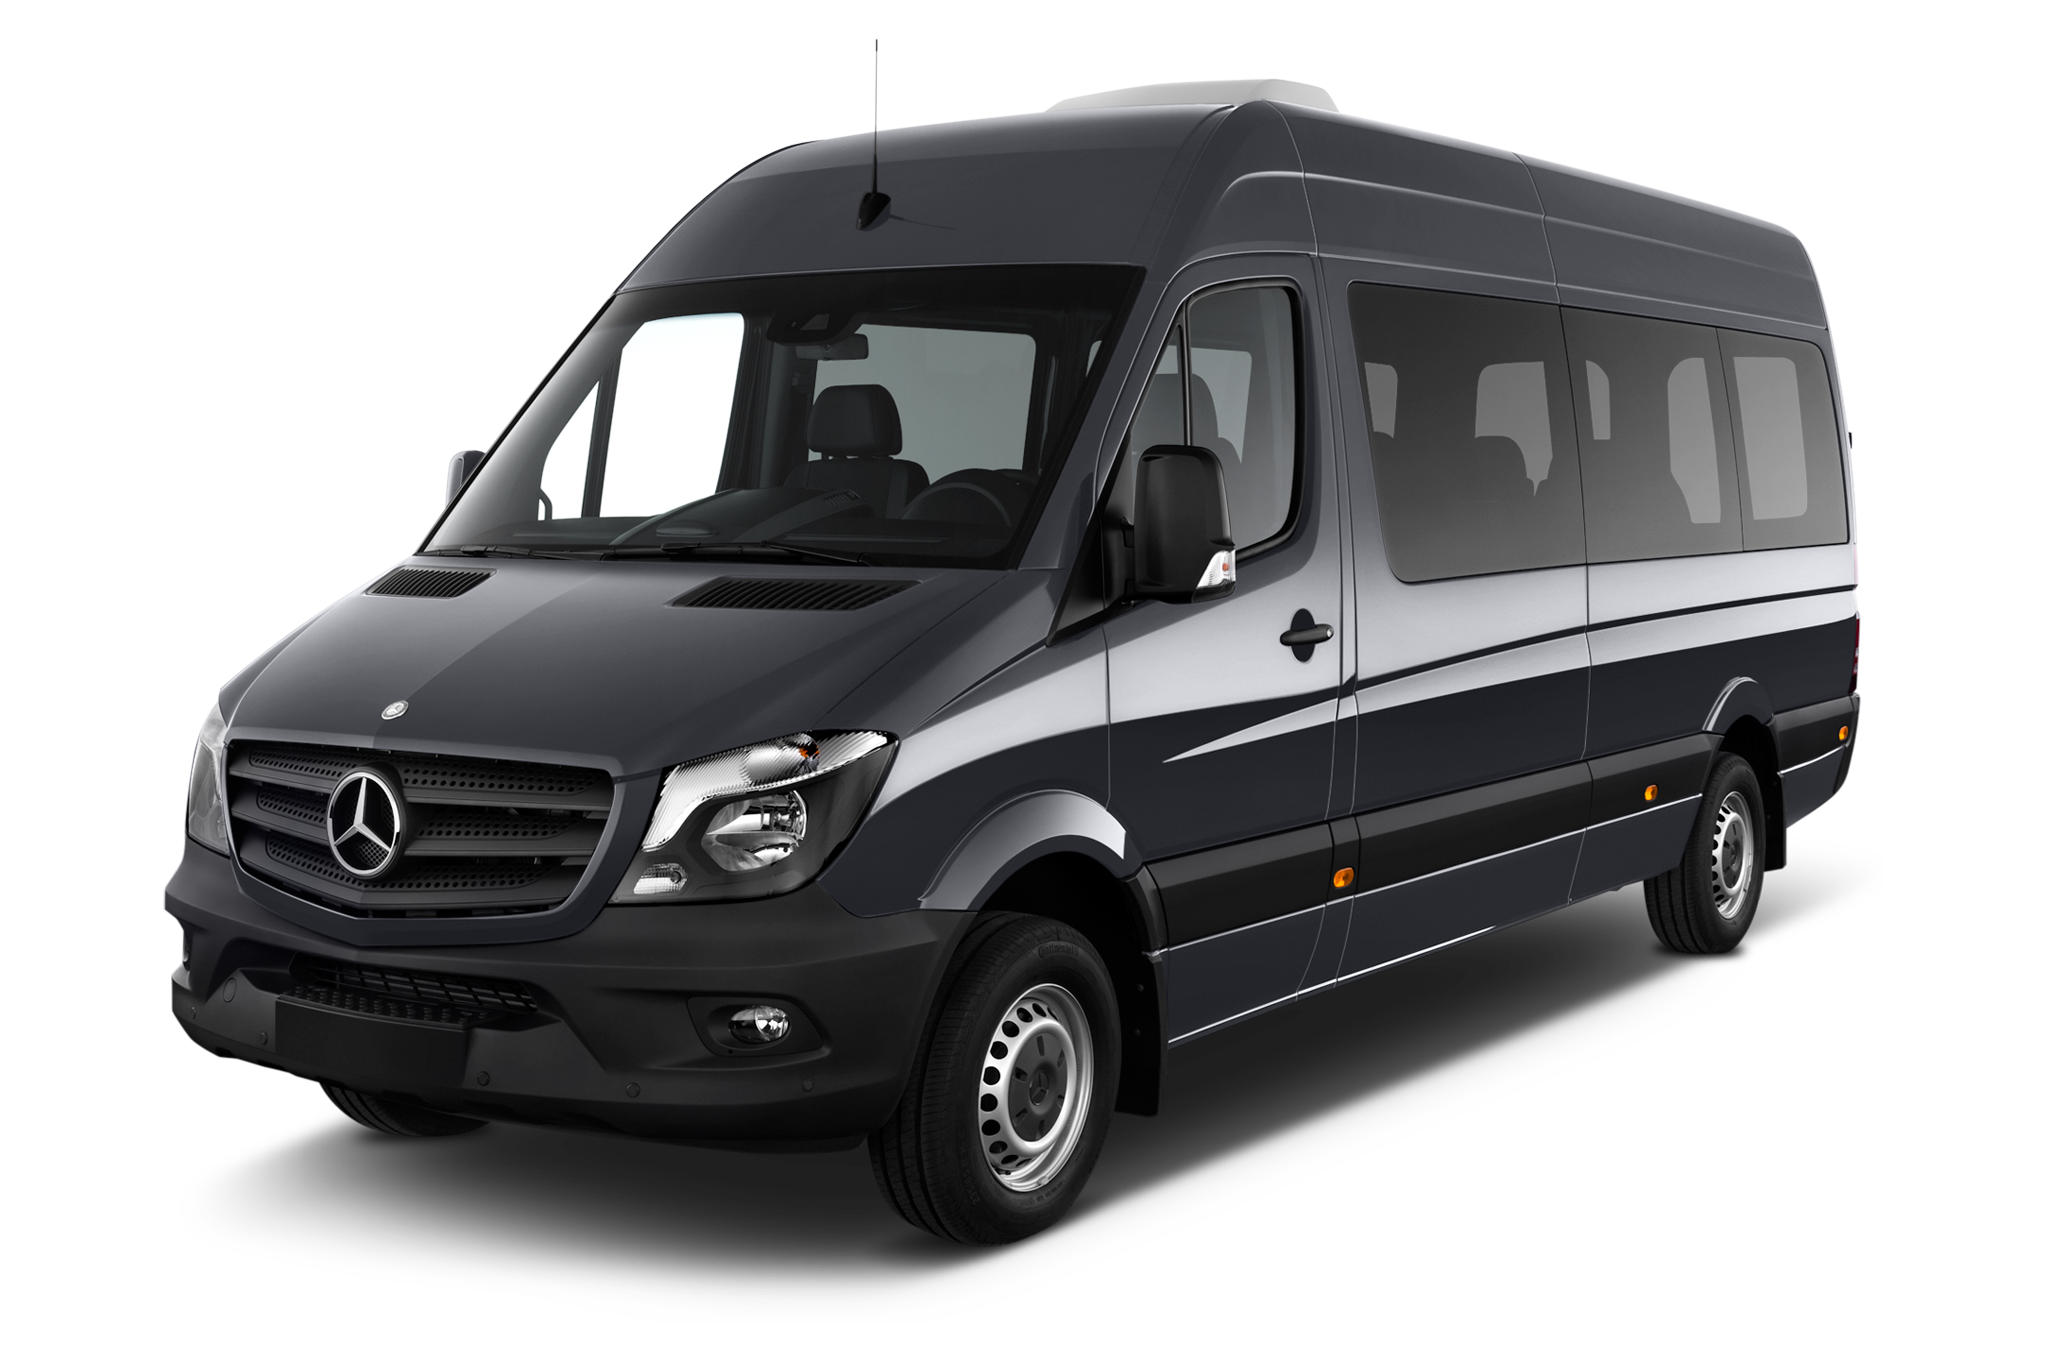 2019 Mercedes Sprinter Van >> Mercedes-Benz Sprinter Worker Offers Van Capability for Less Coinss Coin